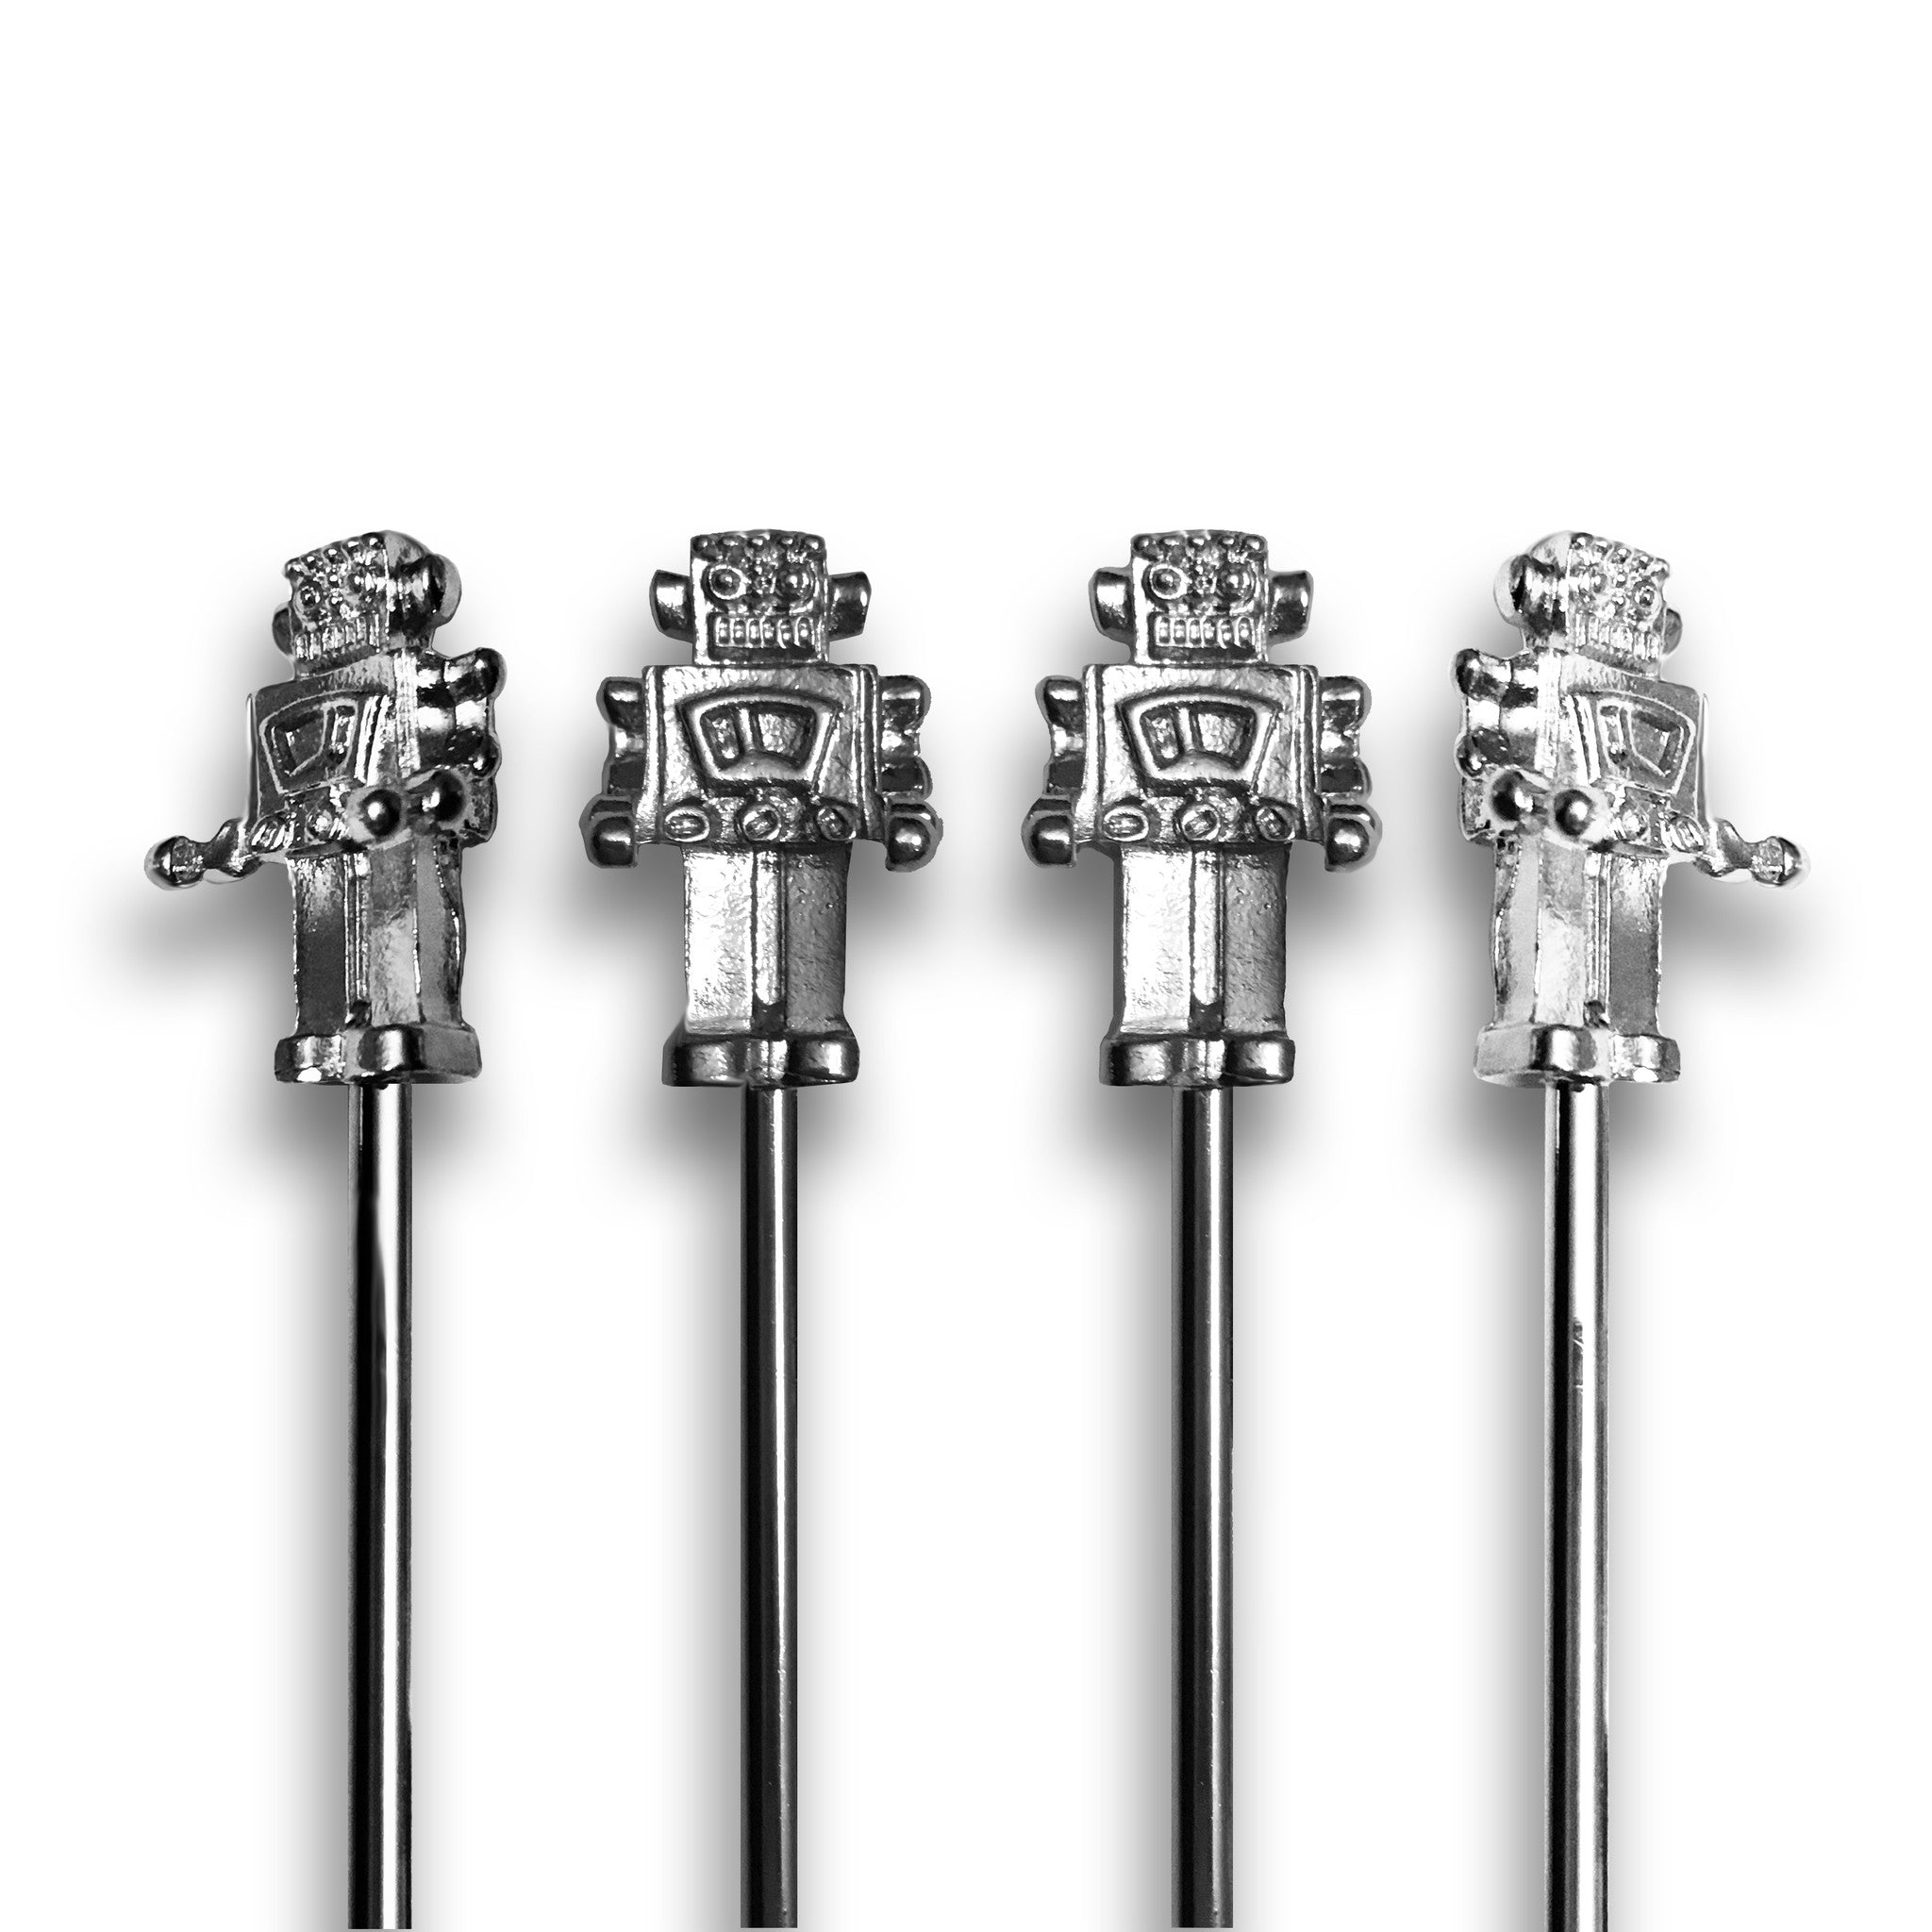 Short Metal Robot Stirrers - 4 Pc Set